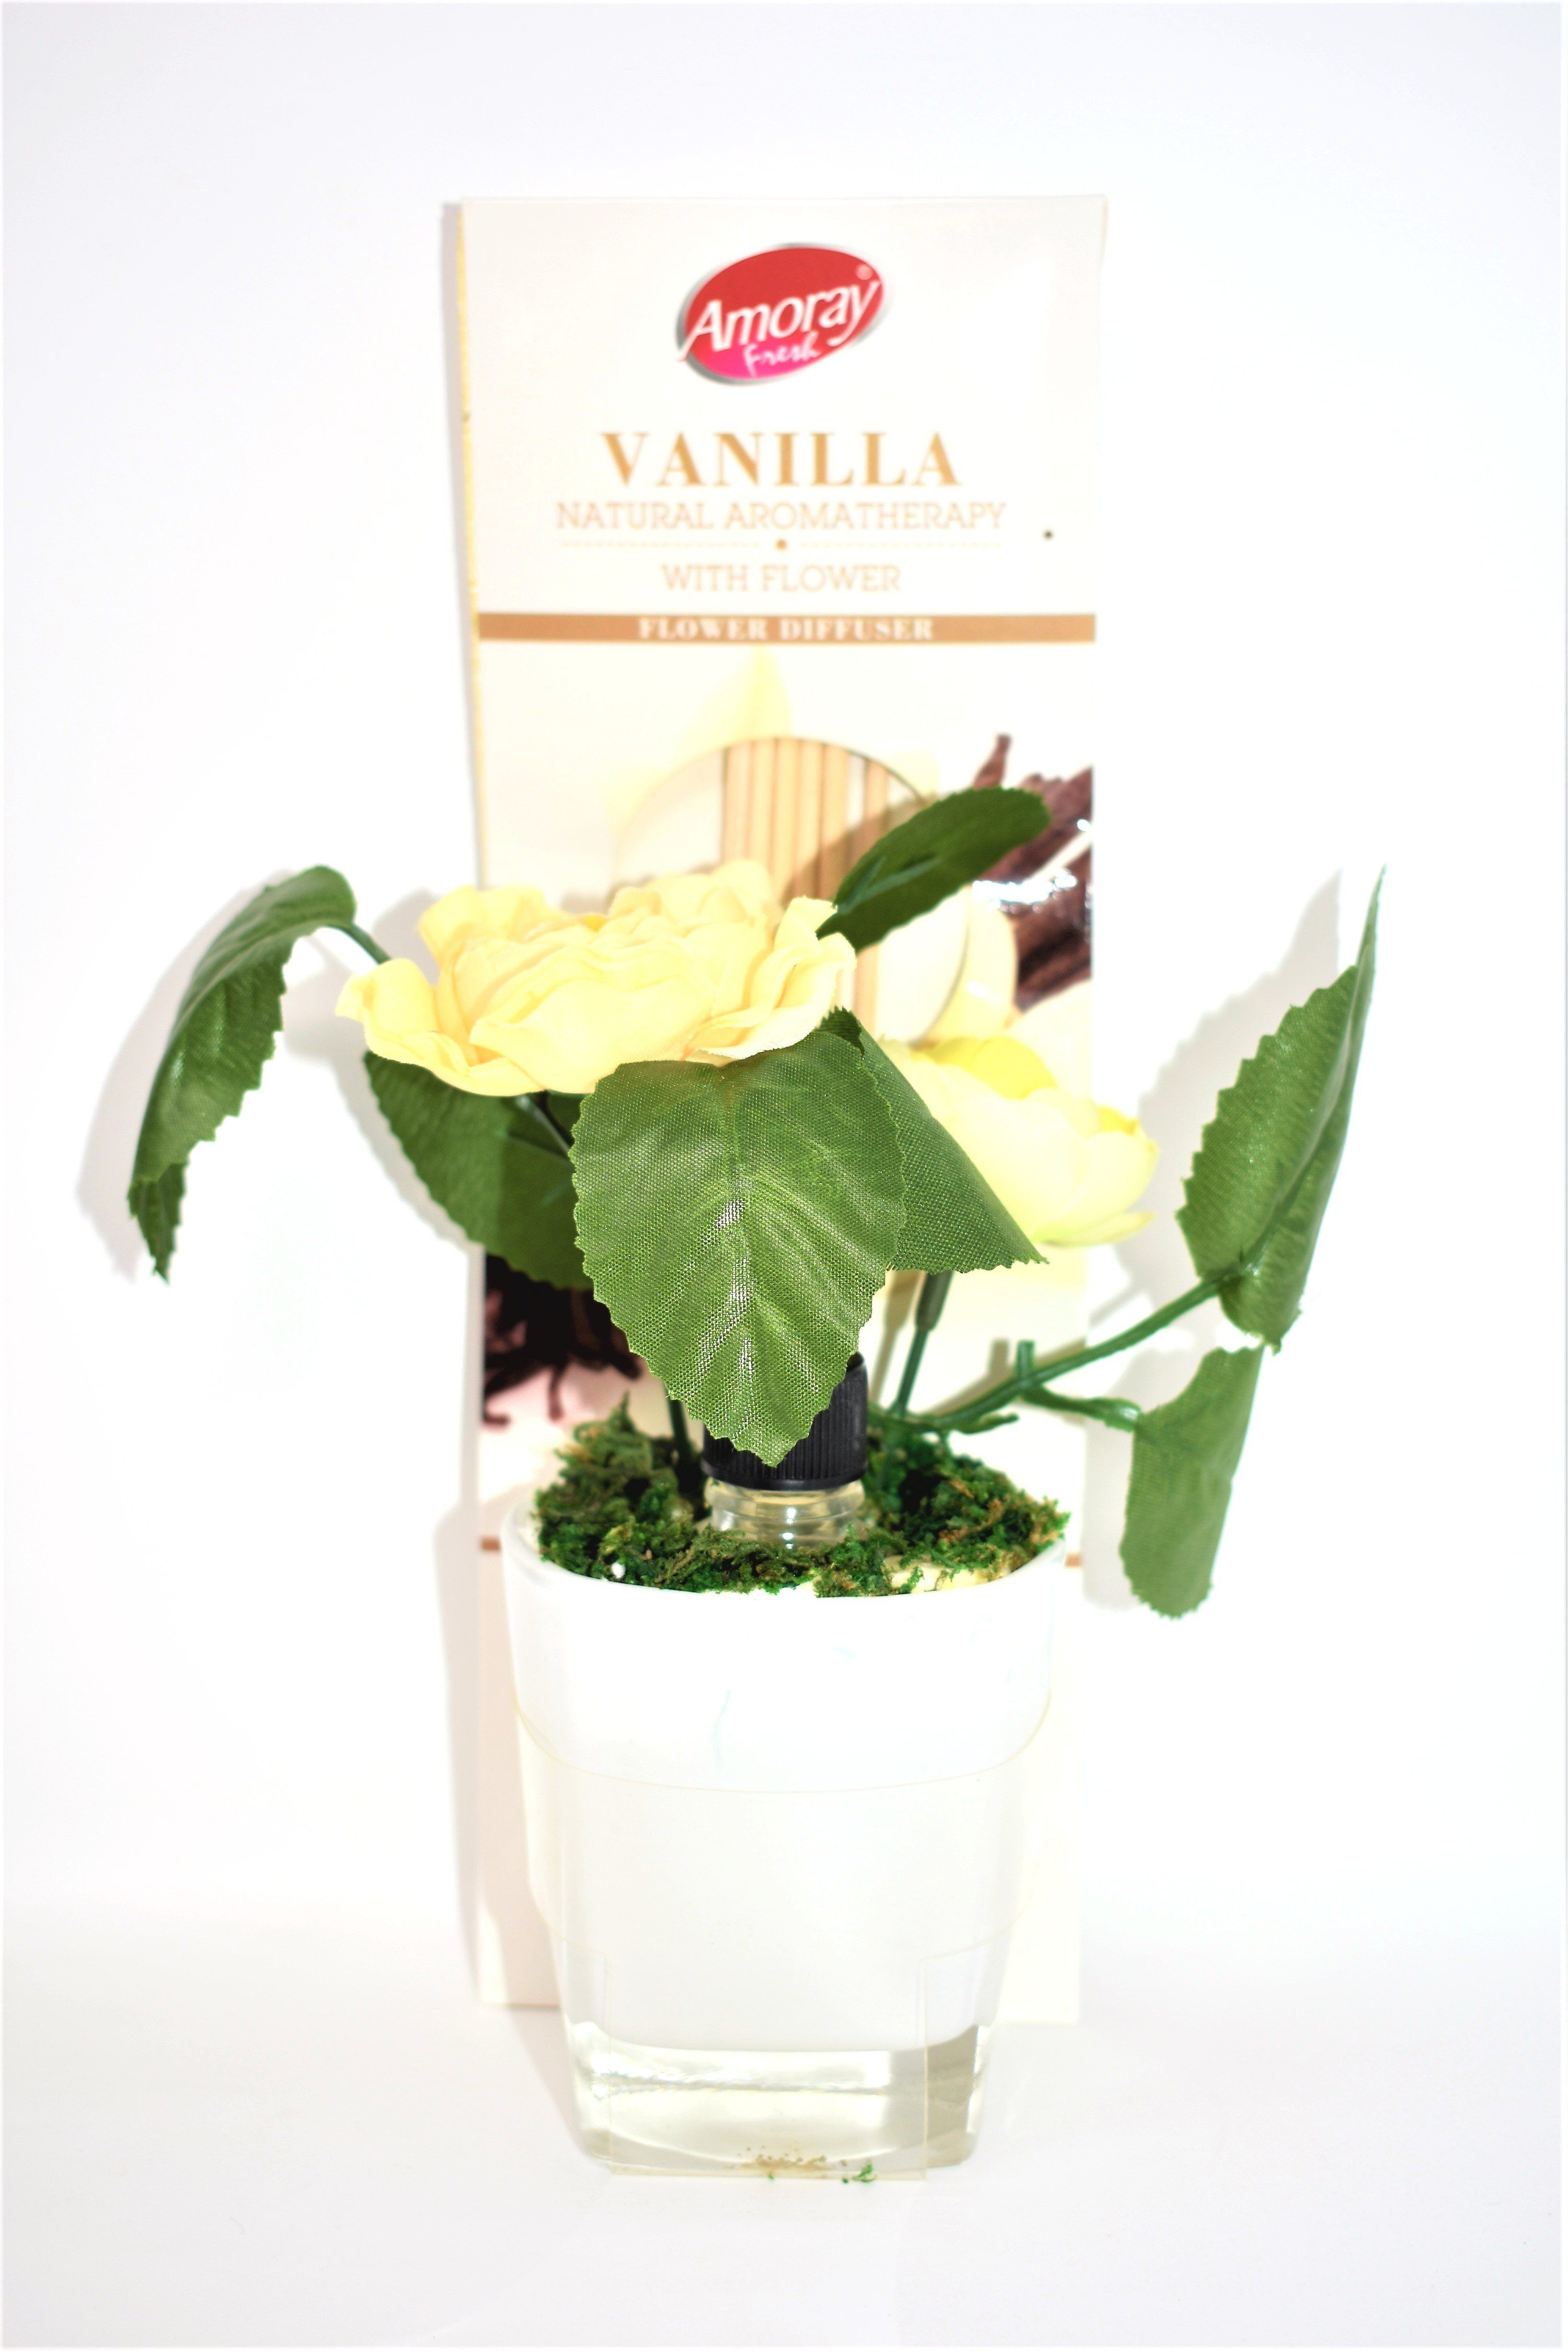 Vanilla Natural Aromatherapy with Flower Diffuser ...